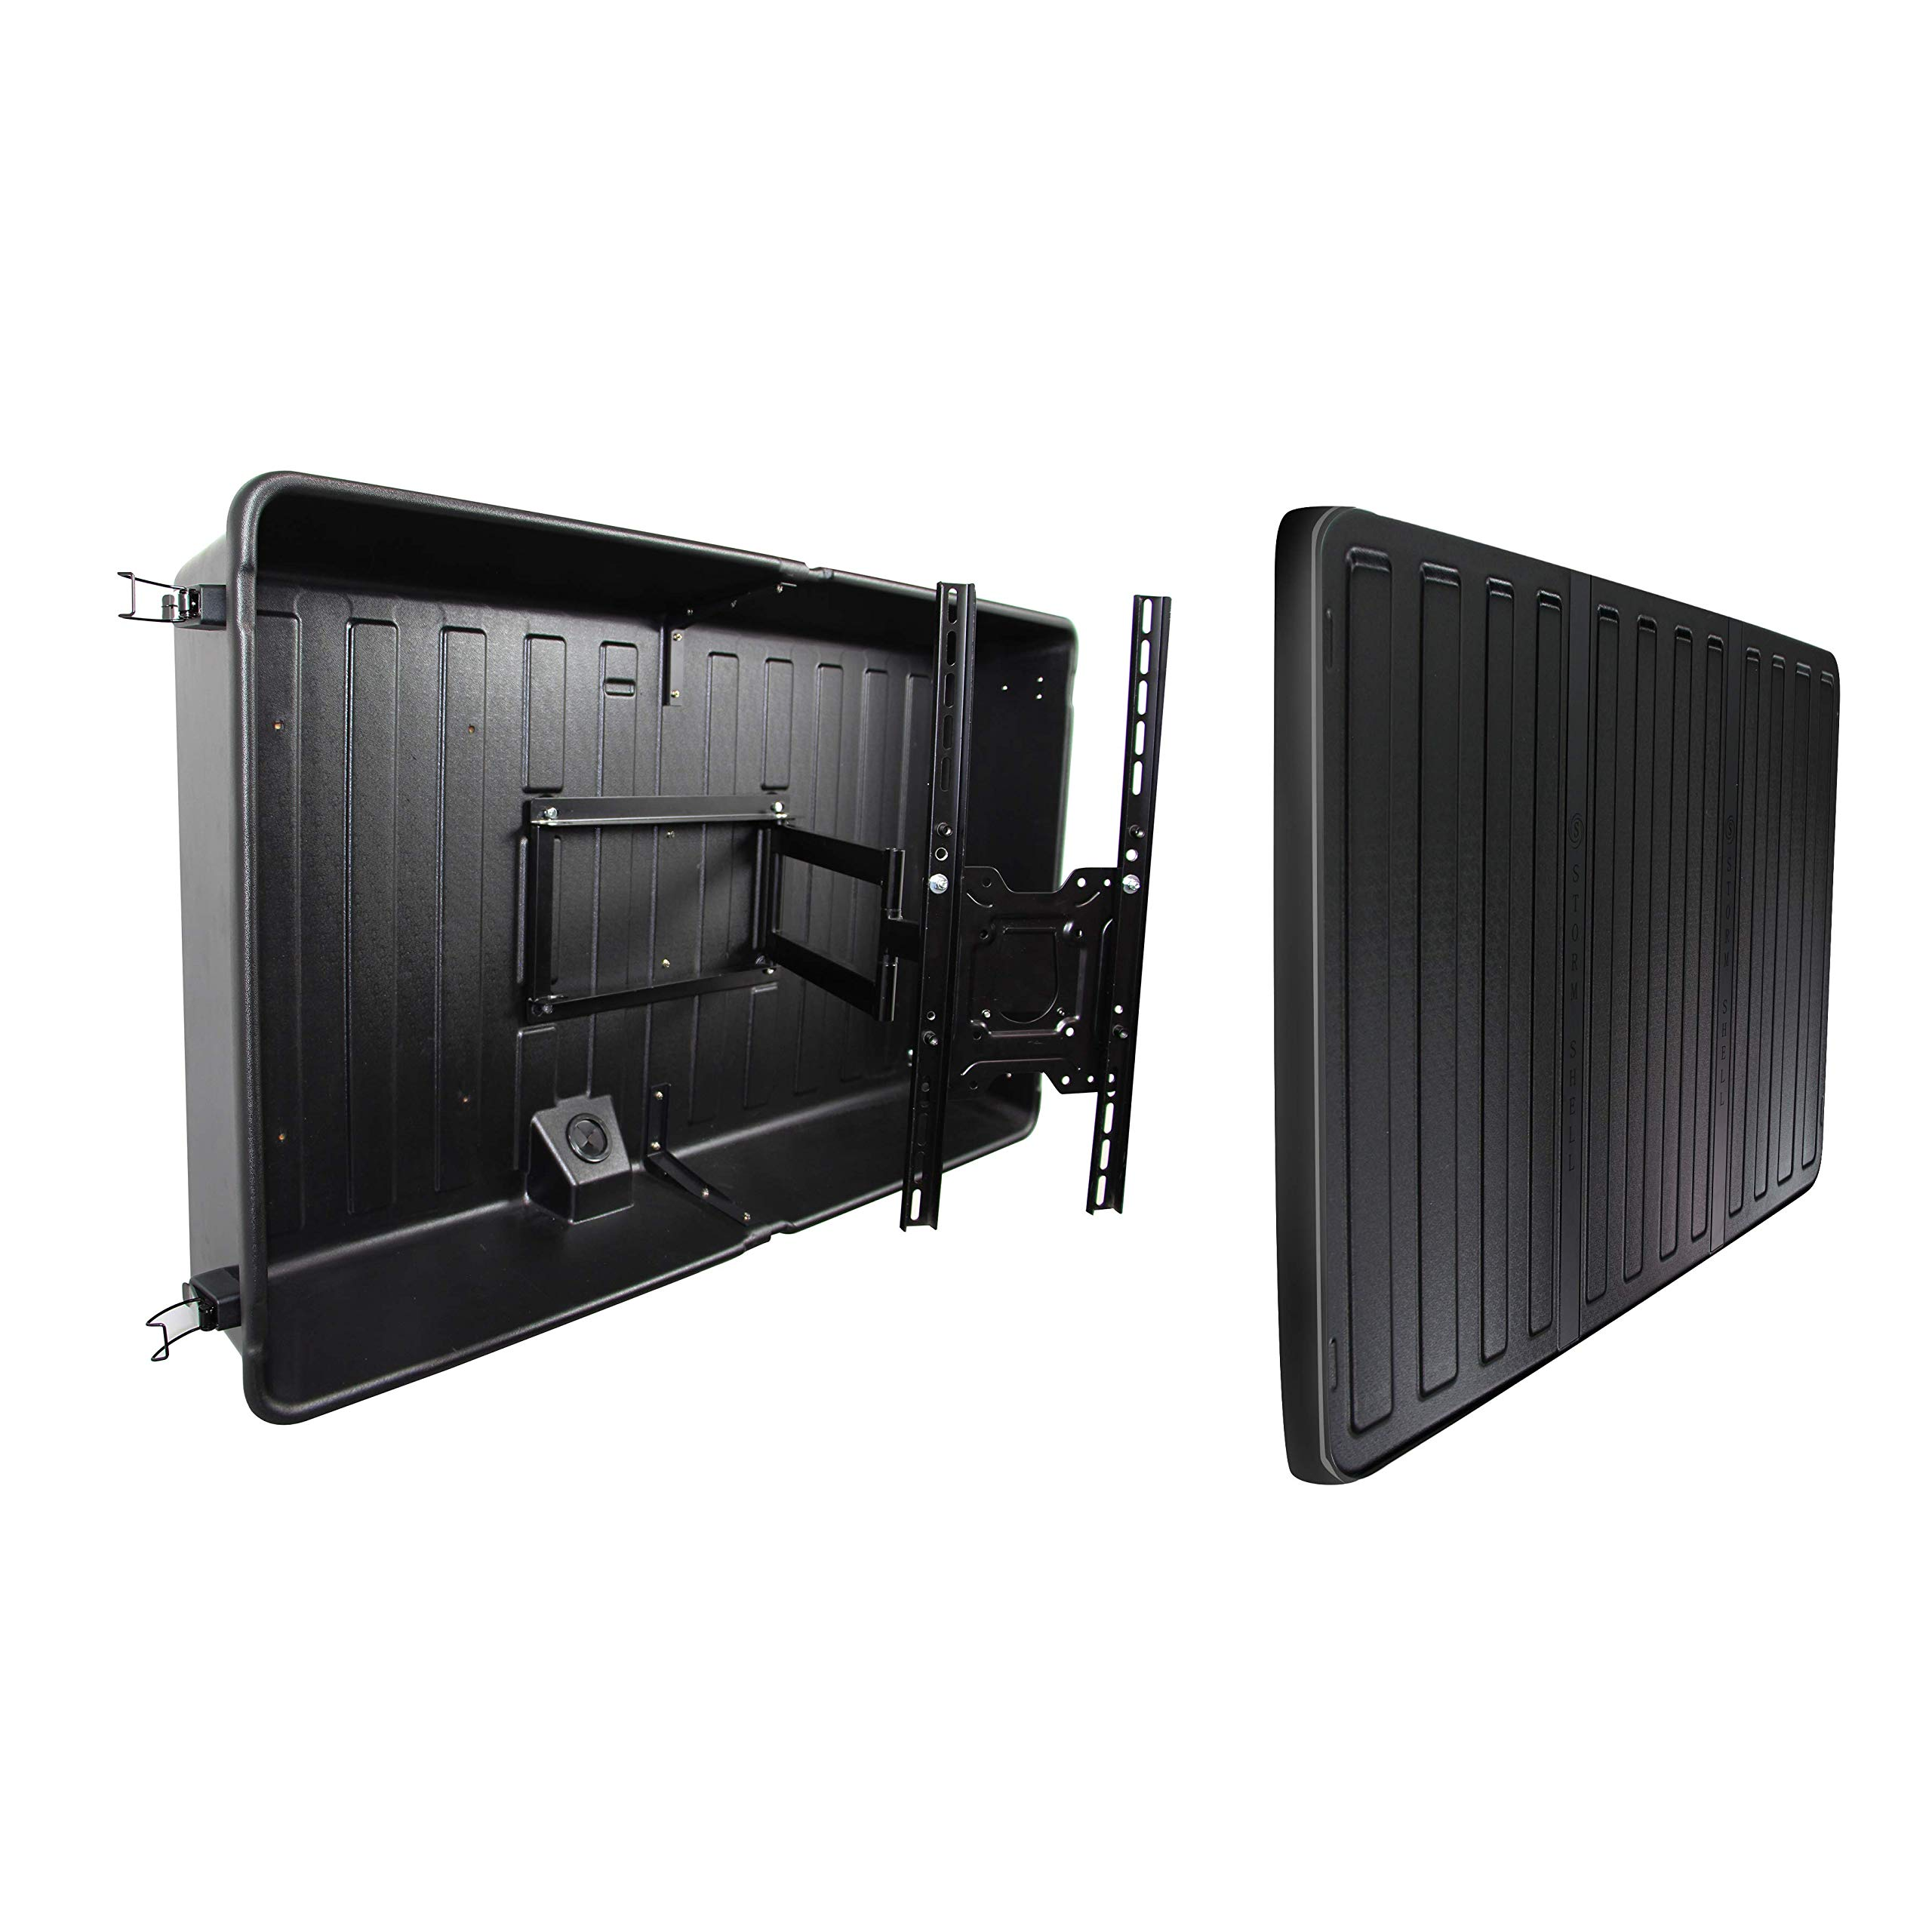 Storm Shell Outdoor TV Hard Cover Weatherproof Protection for Television - Mounts Right on The Wall - TV Wall Mounting Bracket Included … (56-65 inch)